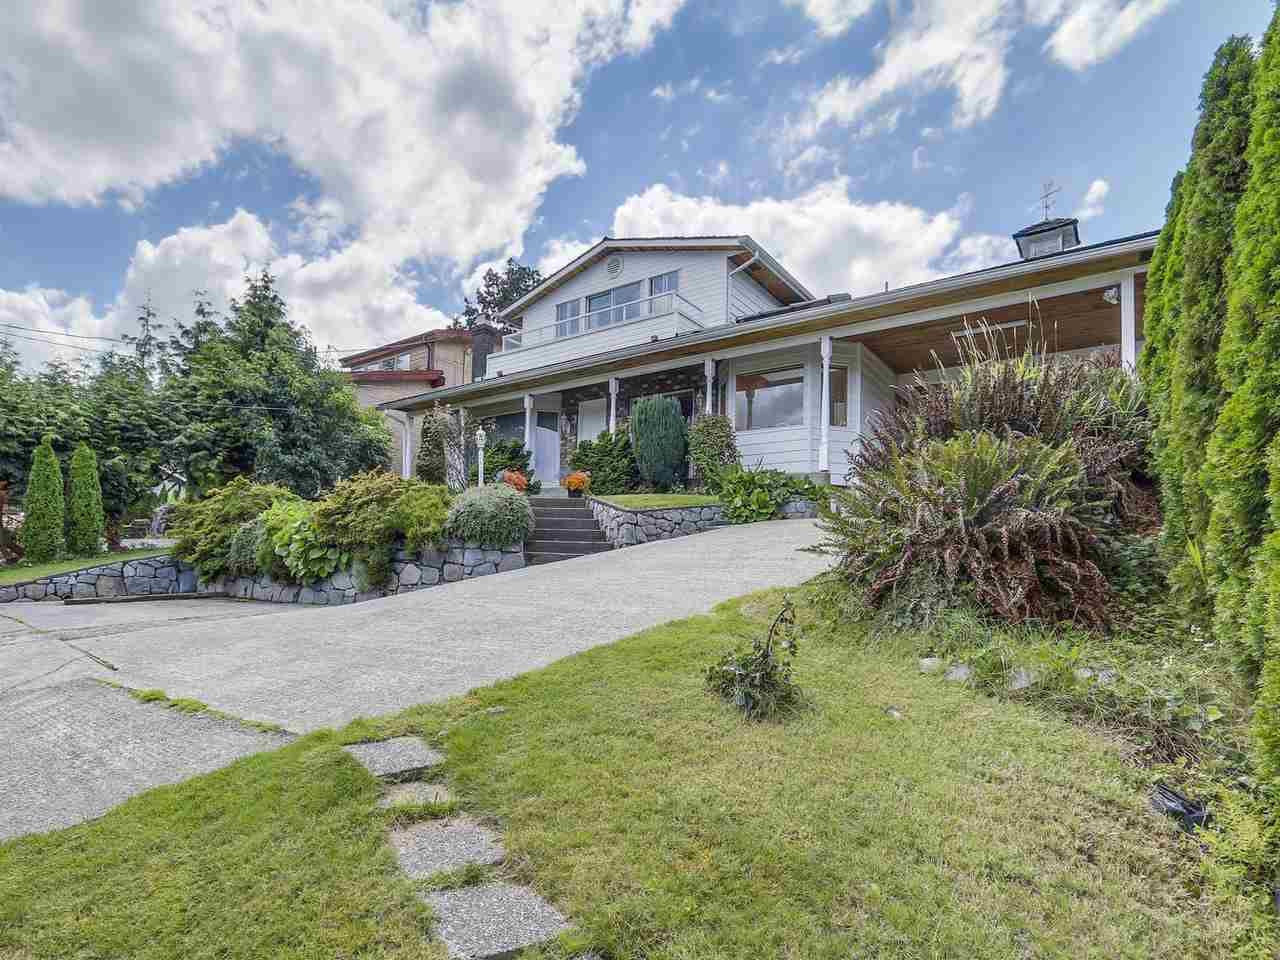 Main Photo: 677 N DOLLARTON Highway in North Vancouver: Dollarton House for sale : MLS®# R2092684